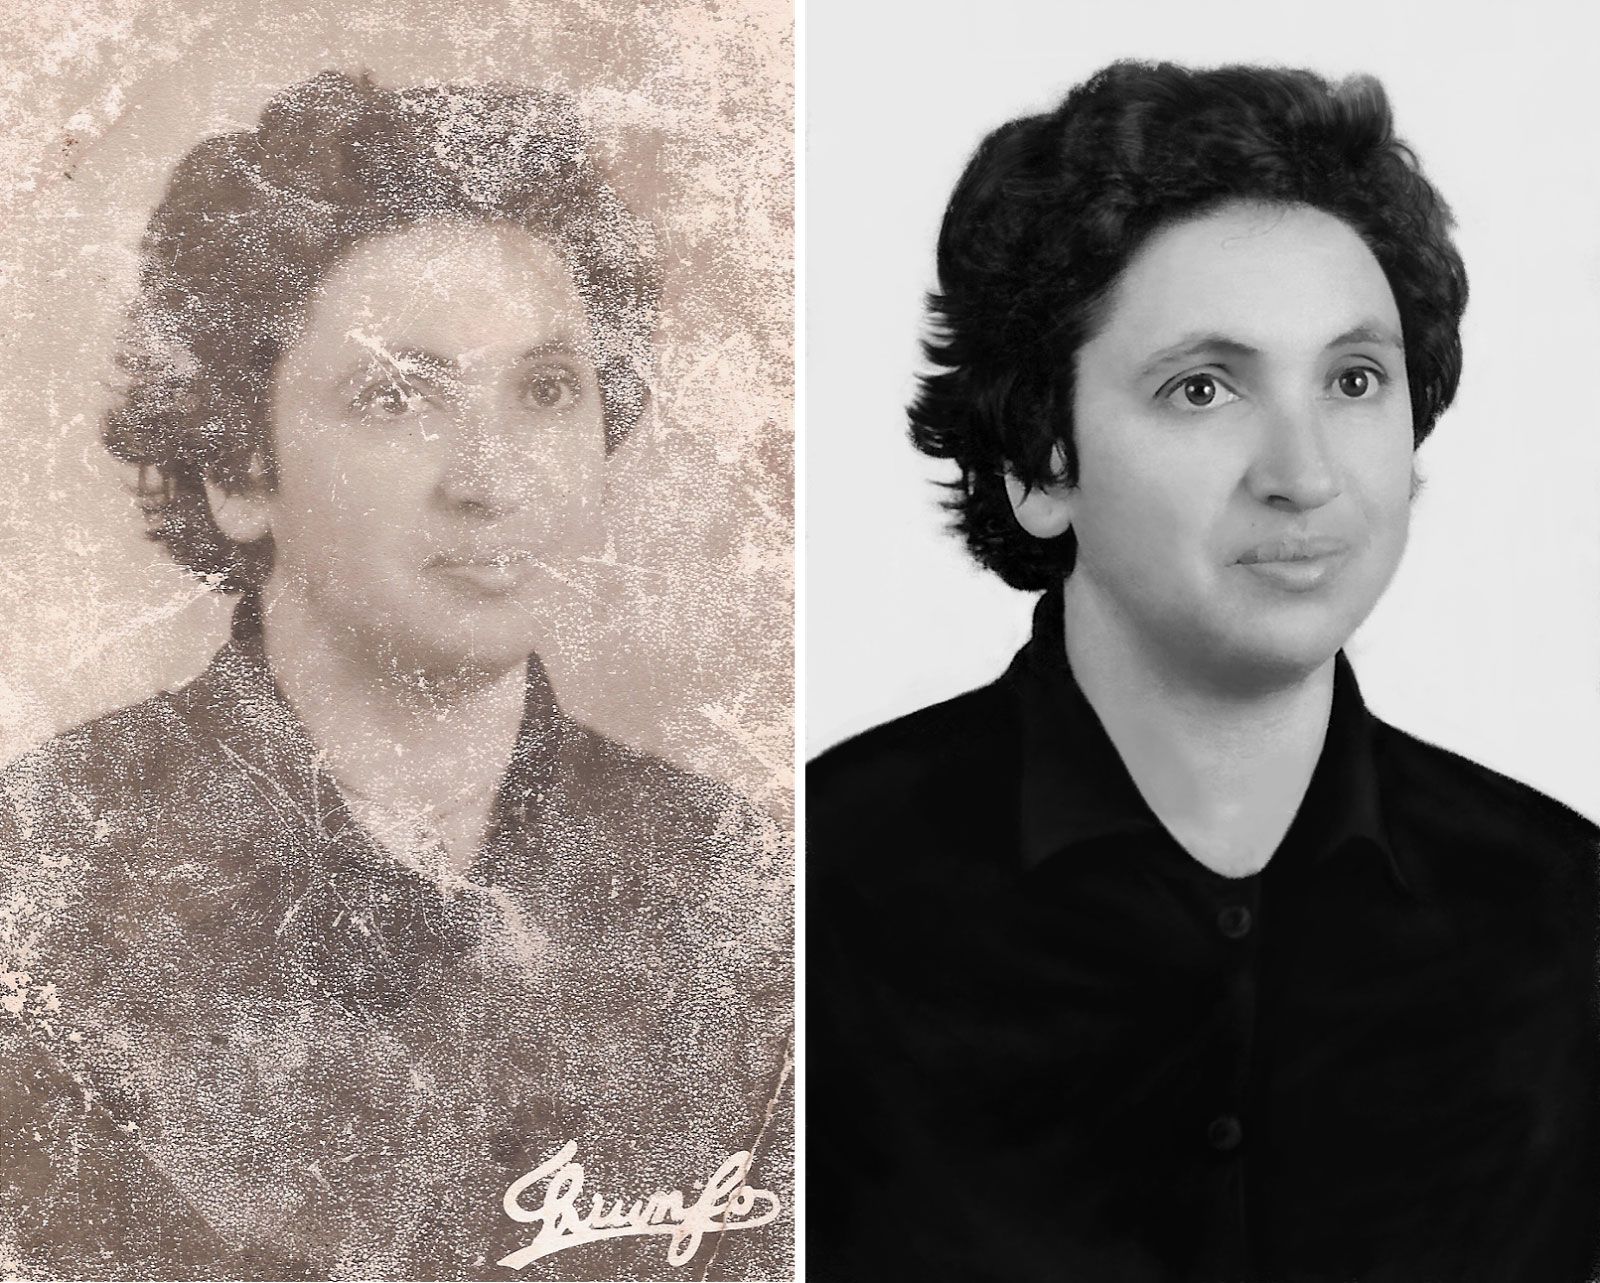 Photo Restoration and enhancement service